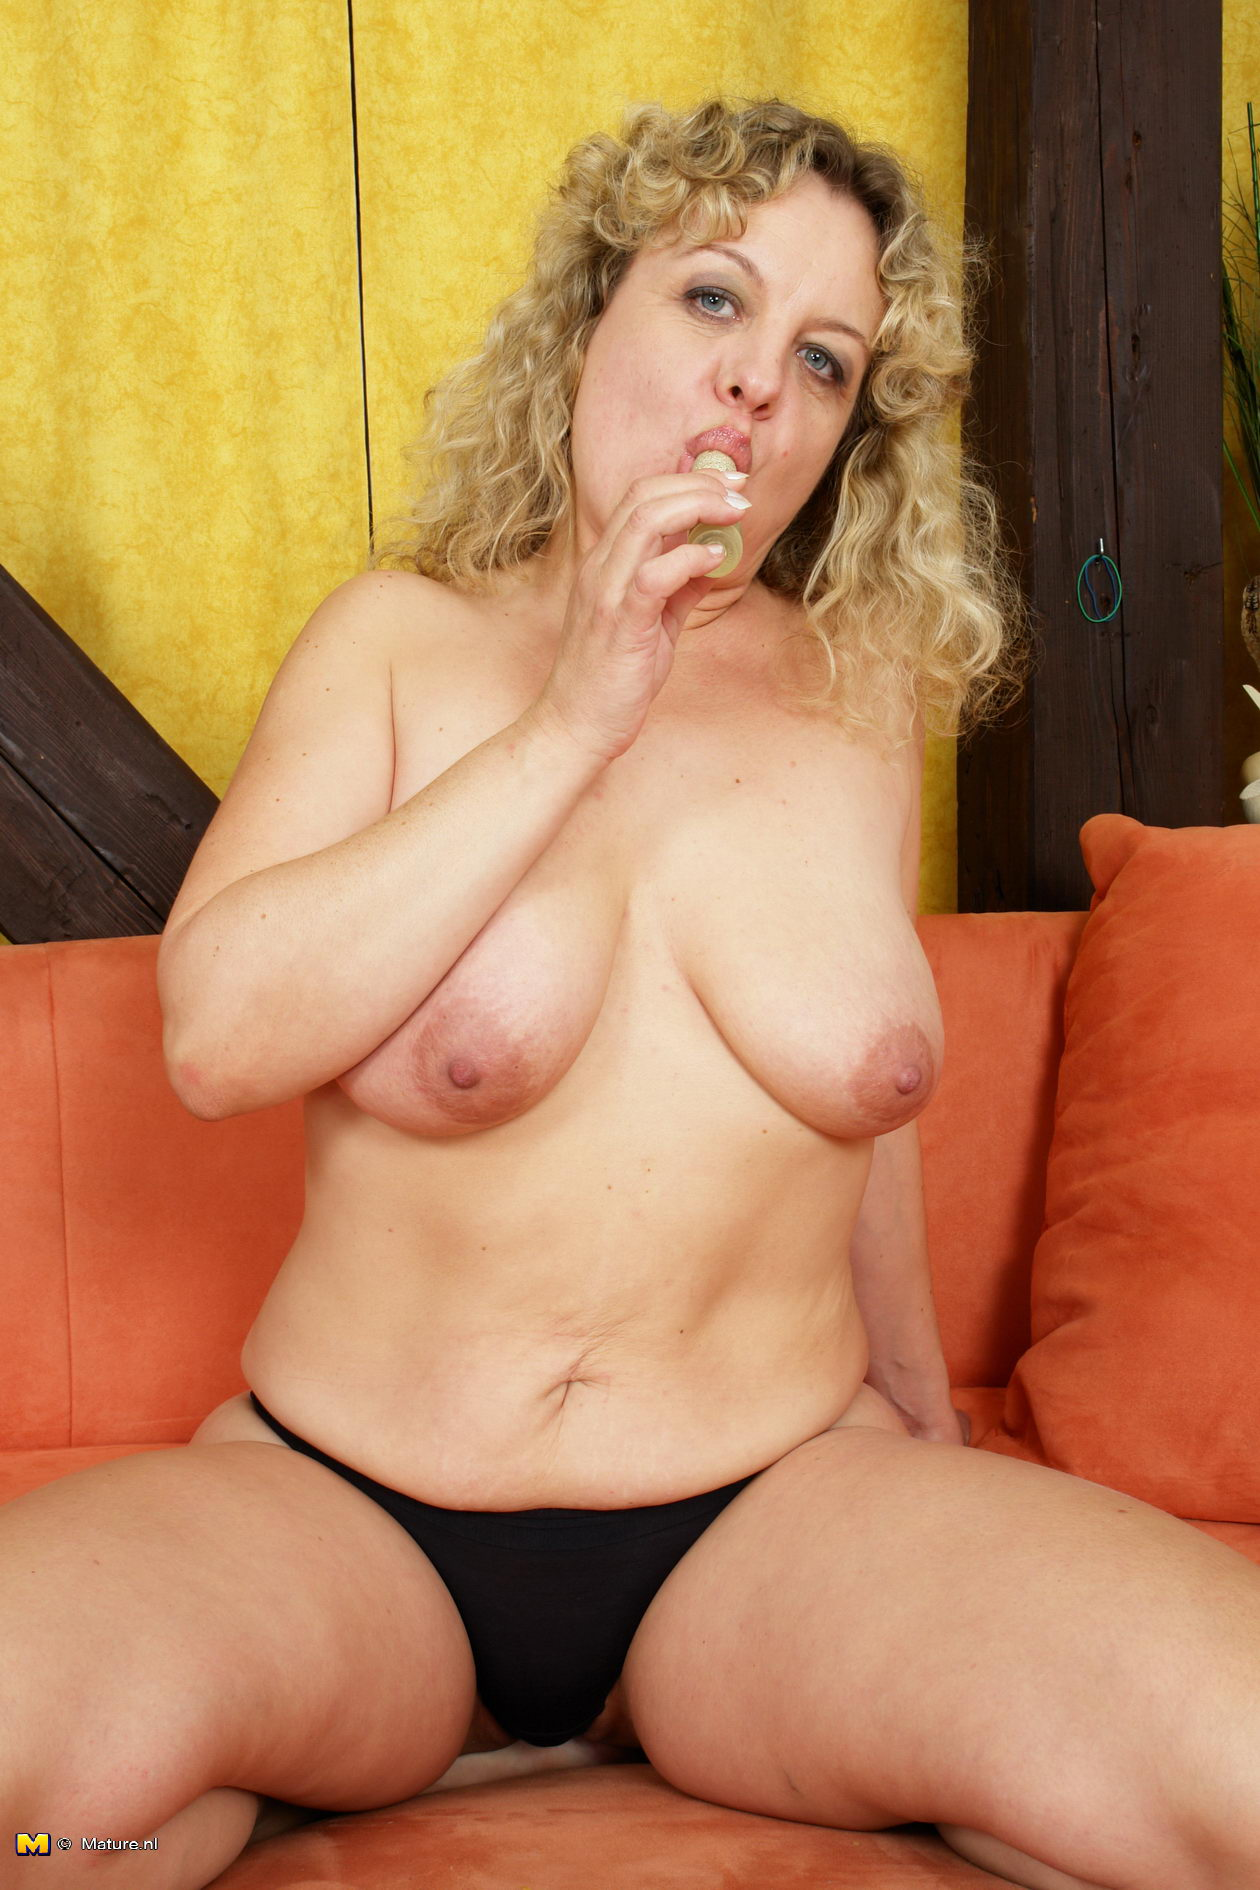 Granny showing off her old but still hot body 8